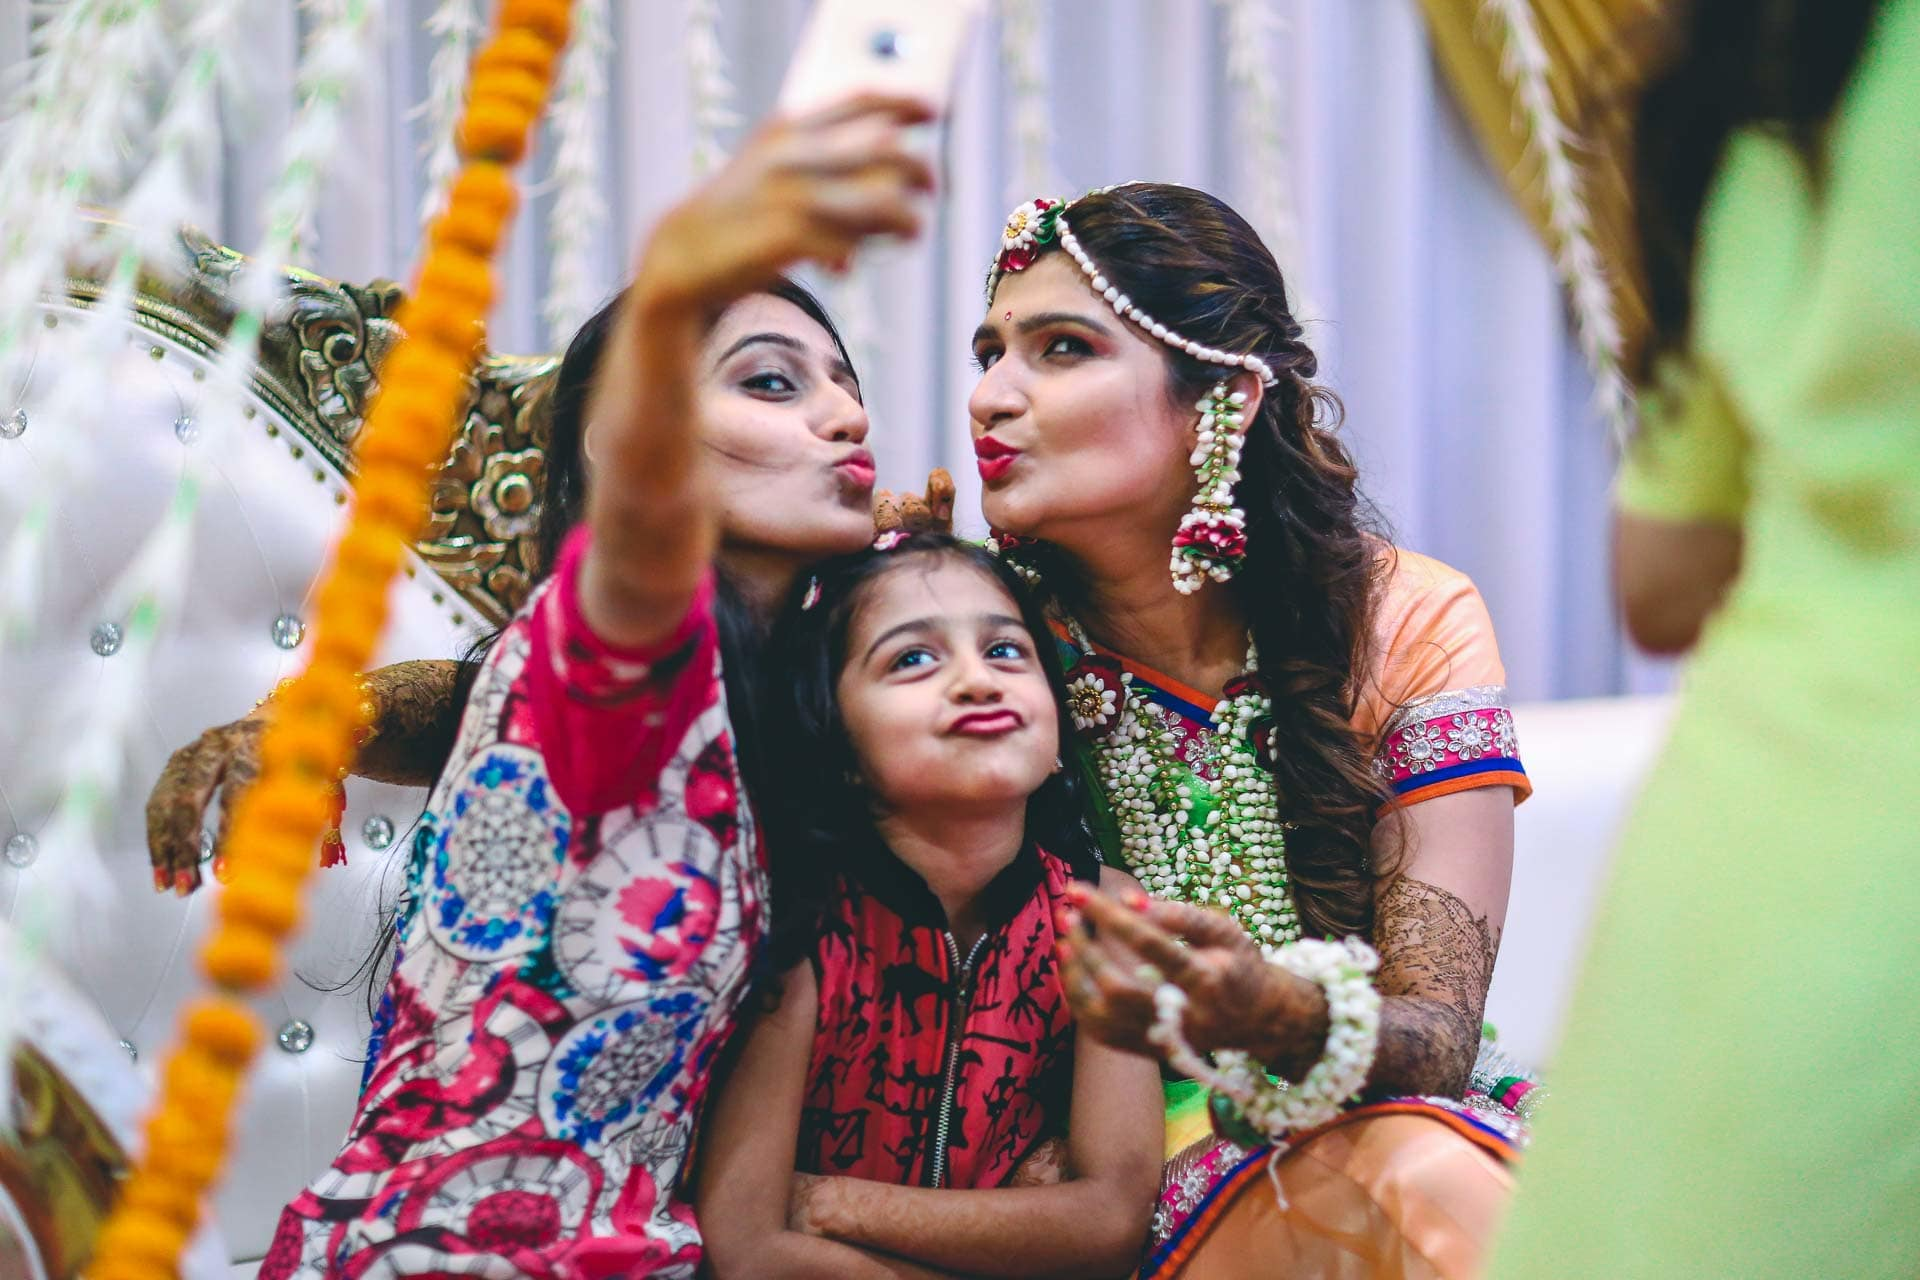 the perfect selfie!:akshay sansare photography and films